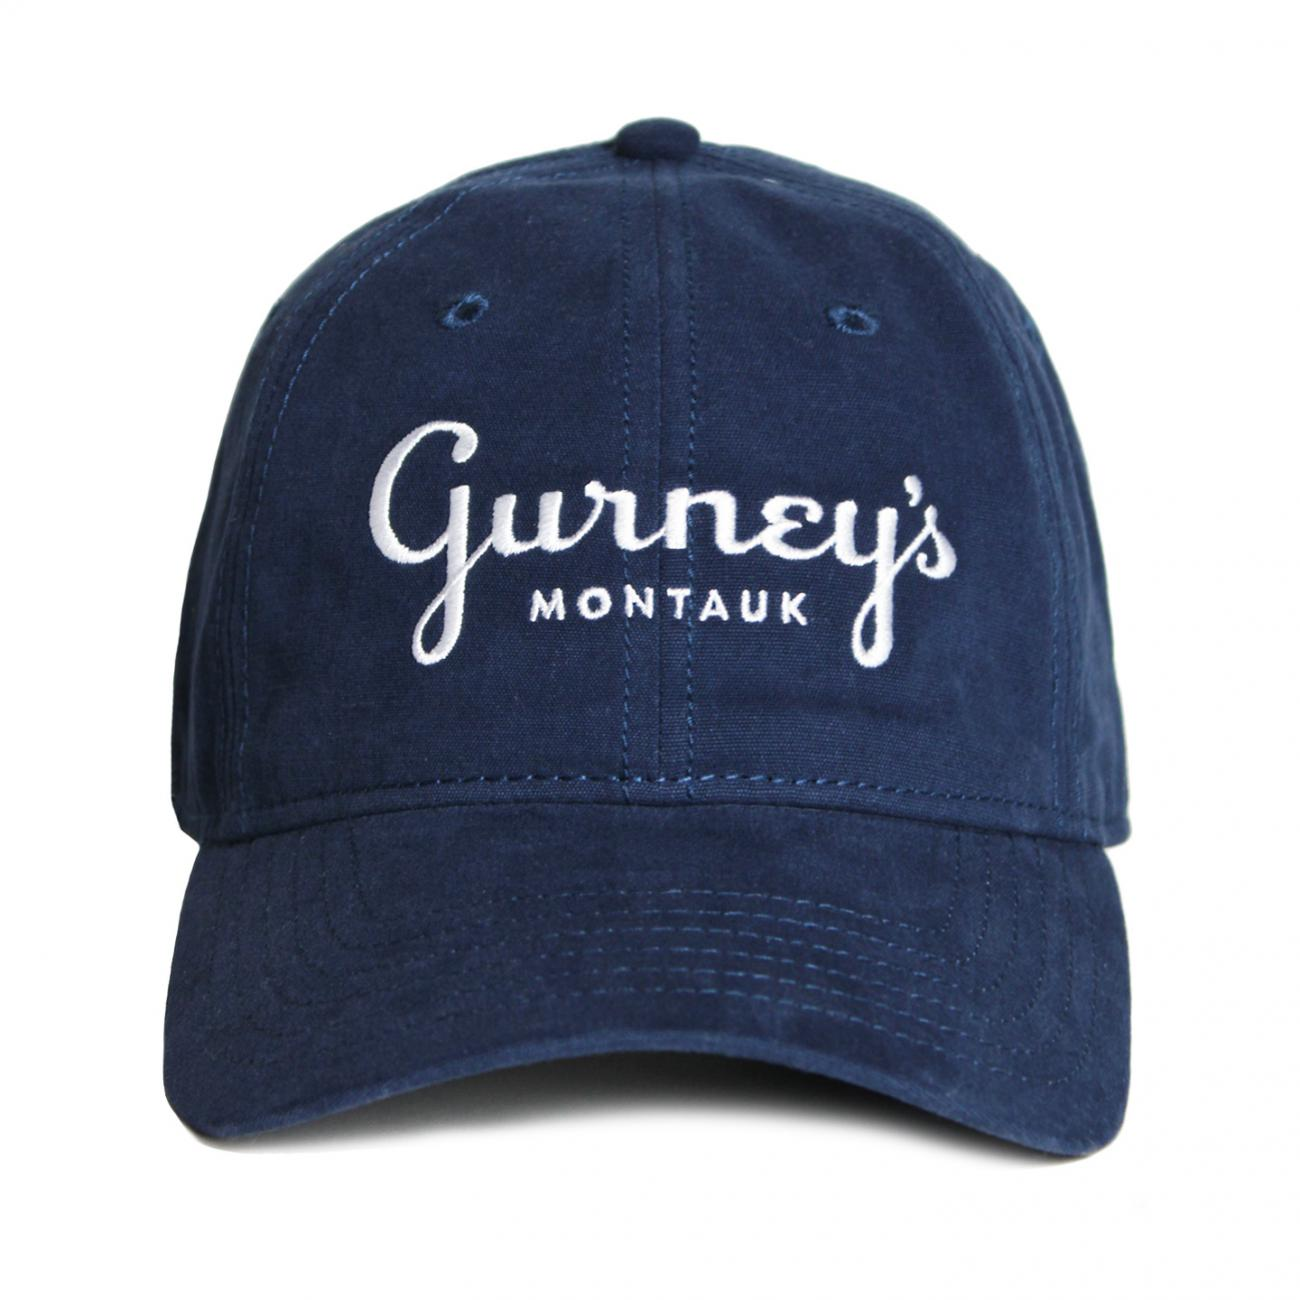 Gurney's Hats Embroidered front navy